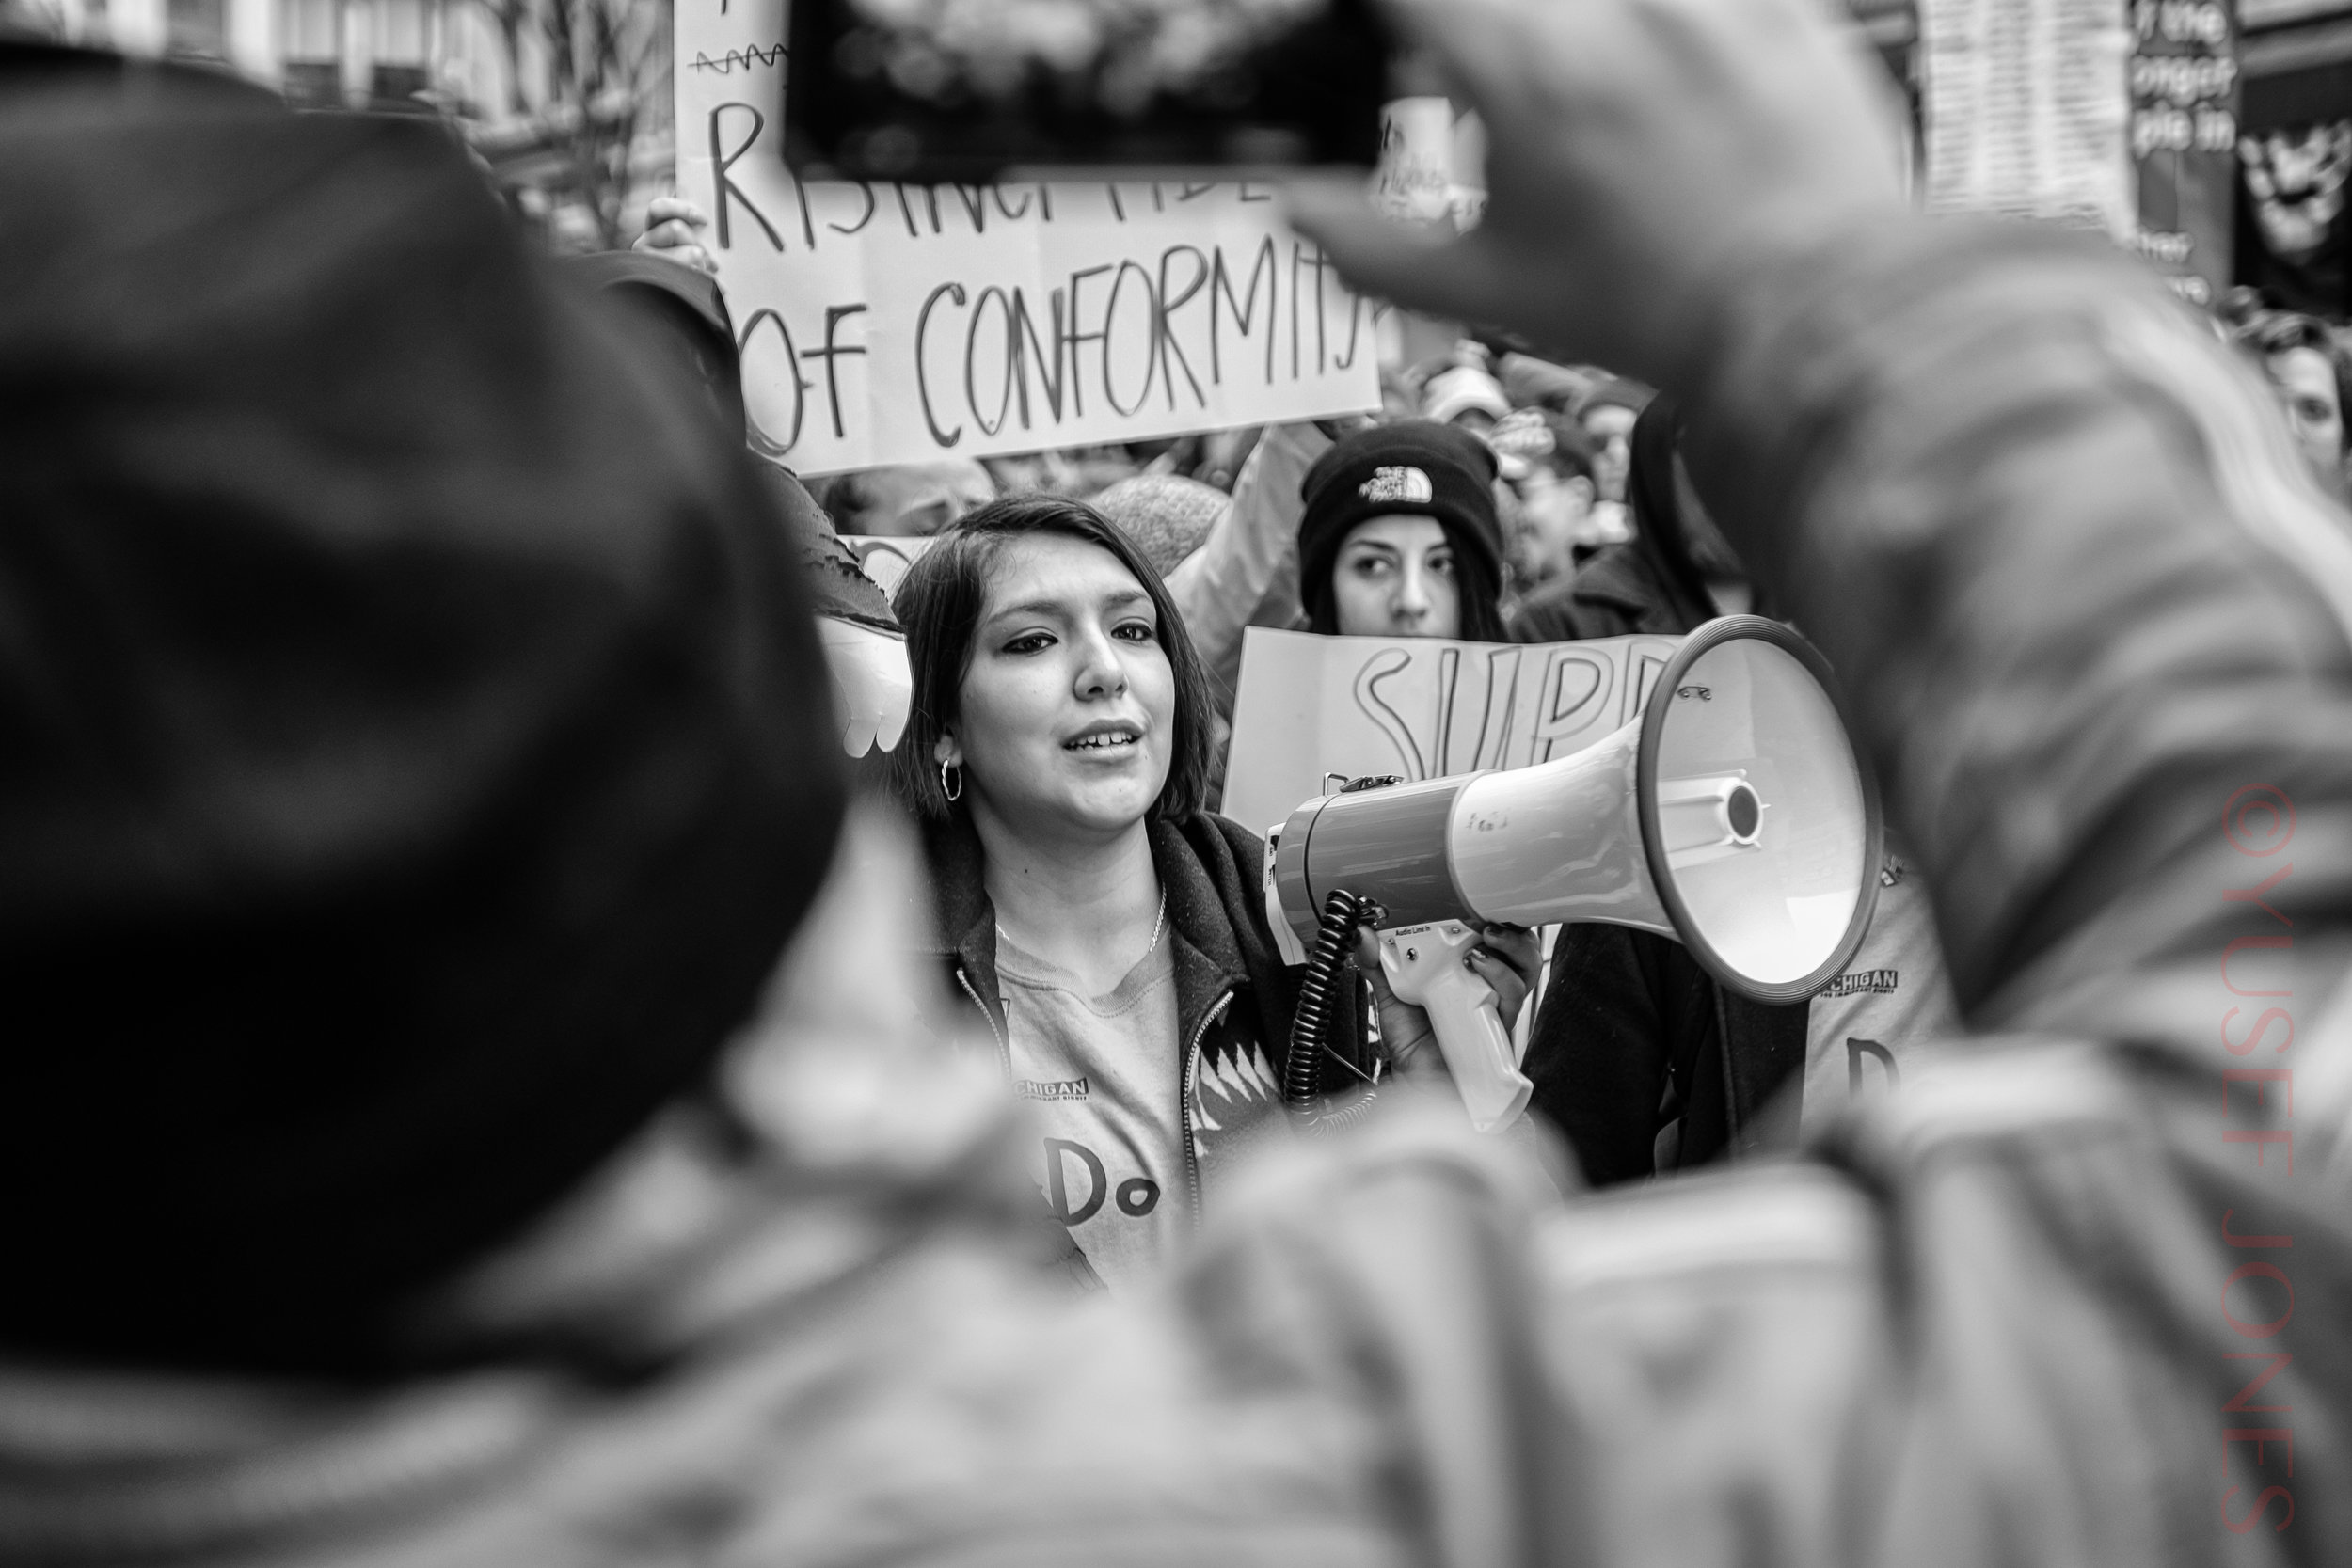 Protest 3 (1 of 1).jpg